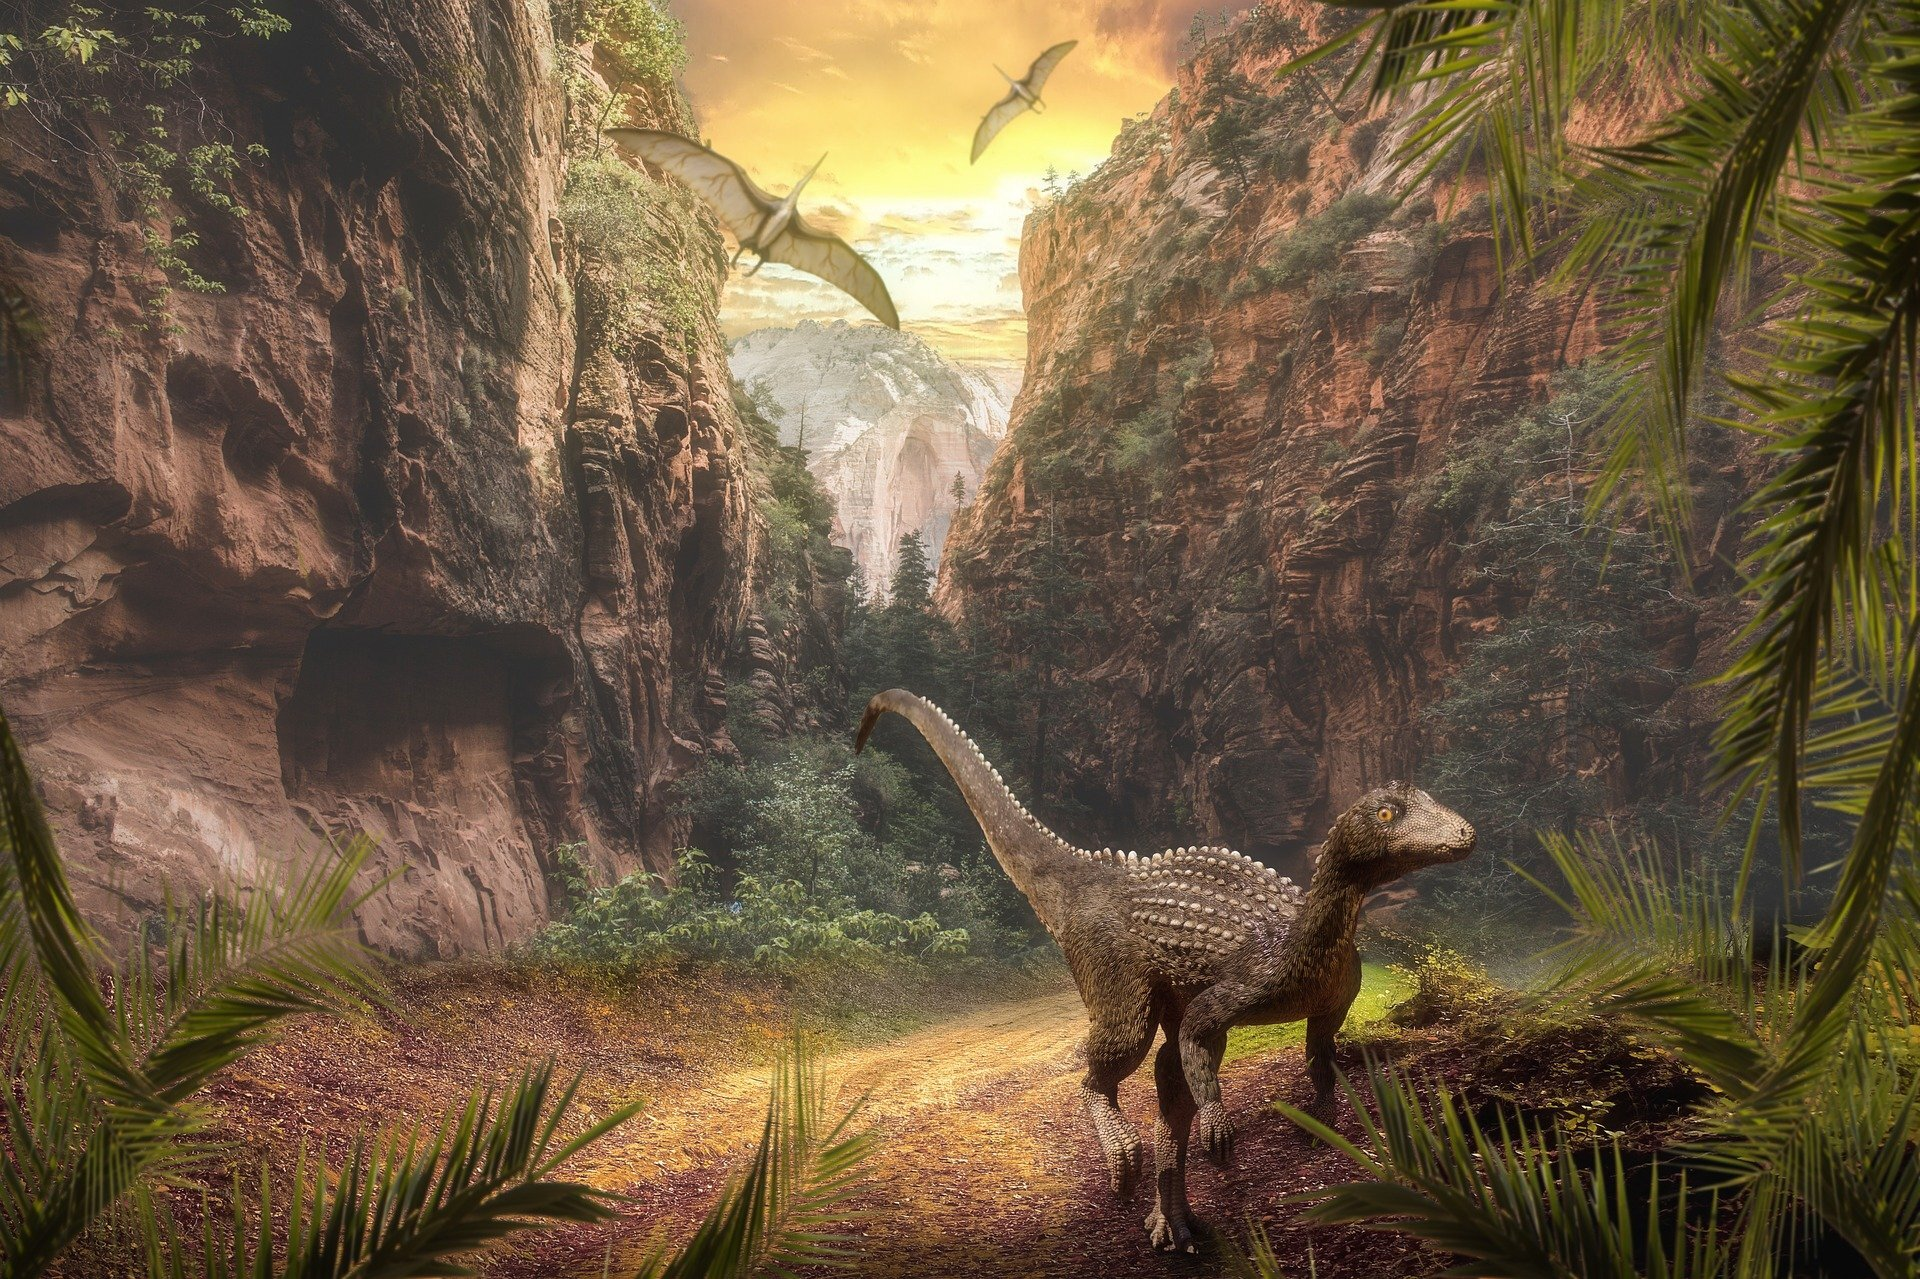 New analysis refutes claim that dinosaurs were in decline before asteroid hit